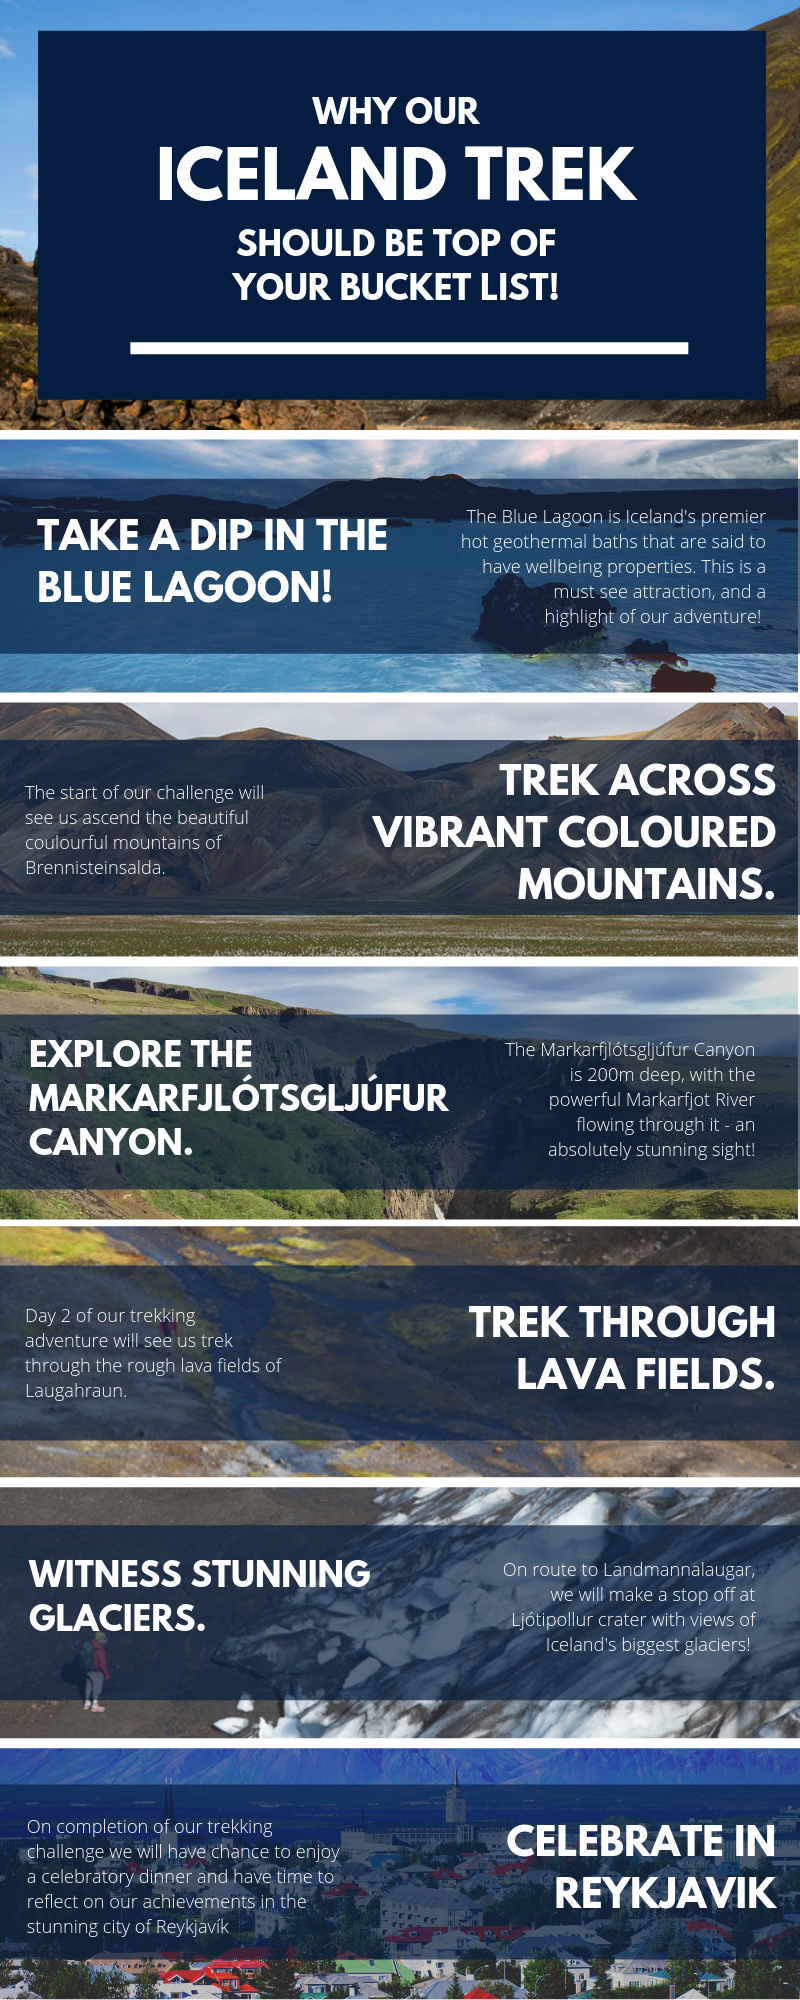 Top reasons why our Iceland Trek should be top of your bucket list.